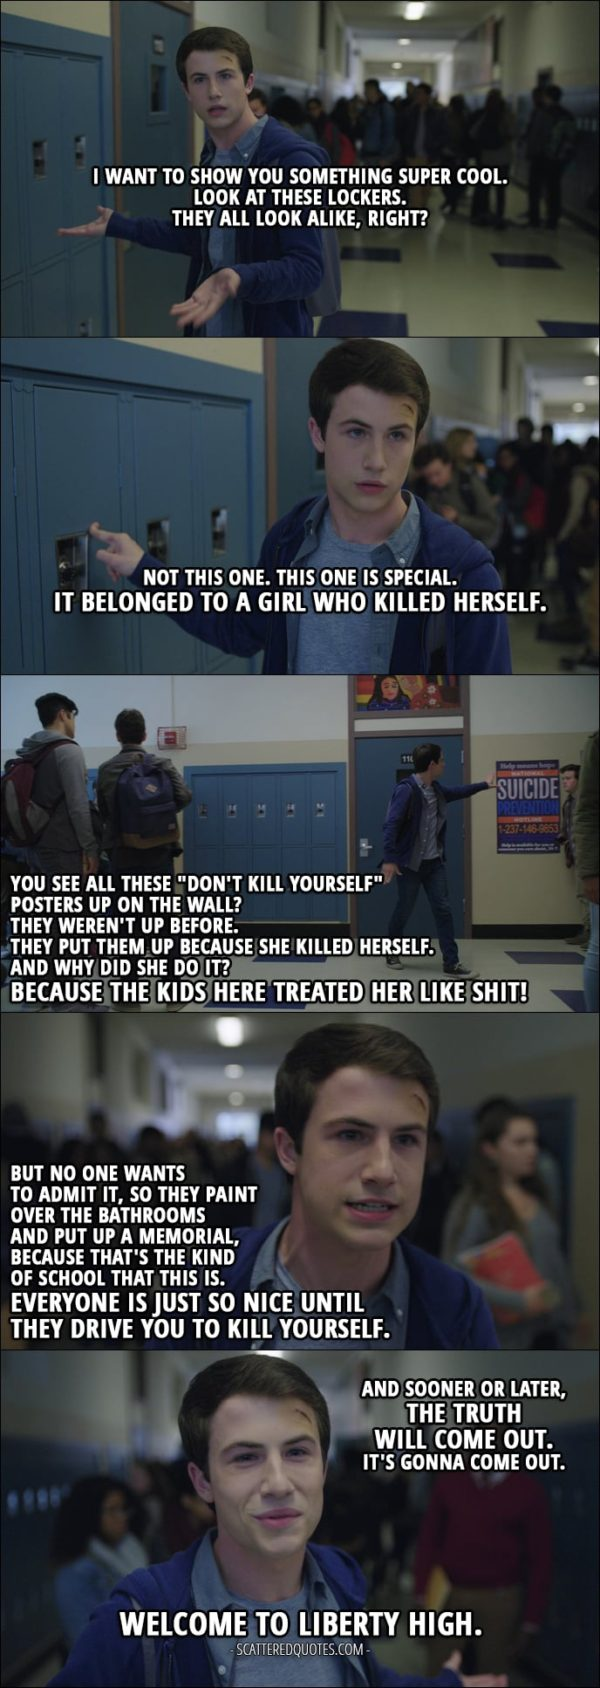 "Quote from 13 Reasons Why 1x07 - Clay Jensen: I want to show you something super cool. Look at these lockers. They all look alike, right? Not this one. This one is special. It belonged to a girl who killed herself. You see all these ""don't kill yourself"" posters up on the wall? They weren't up before. They put them up because she killed herself. And why did she do it? Because the kids here treated her like shit! But no one wants to admit it, so they paint over the bathrooms and put up a memorial, because that's the kind of school that this is. Everyone is just so nice until they drive you to kill yourself. And sooner or later, the truth will come out. It's gonna come out. Welcome to Liberty High."